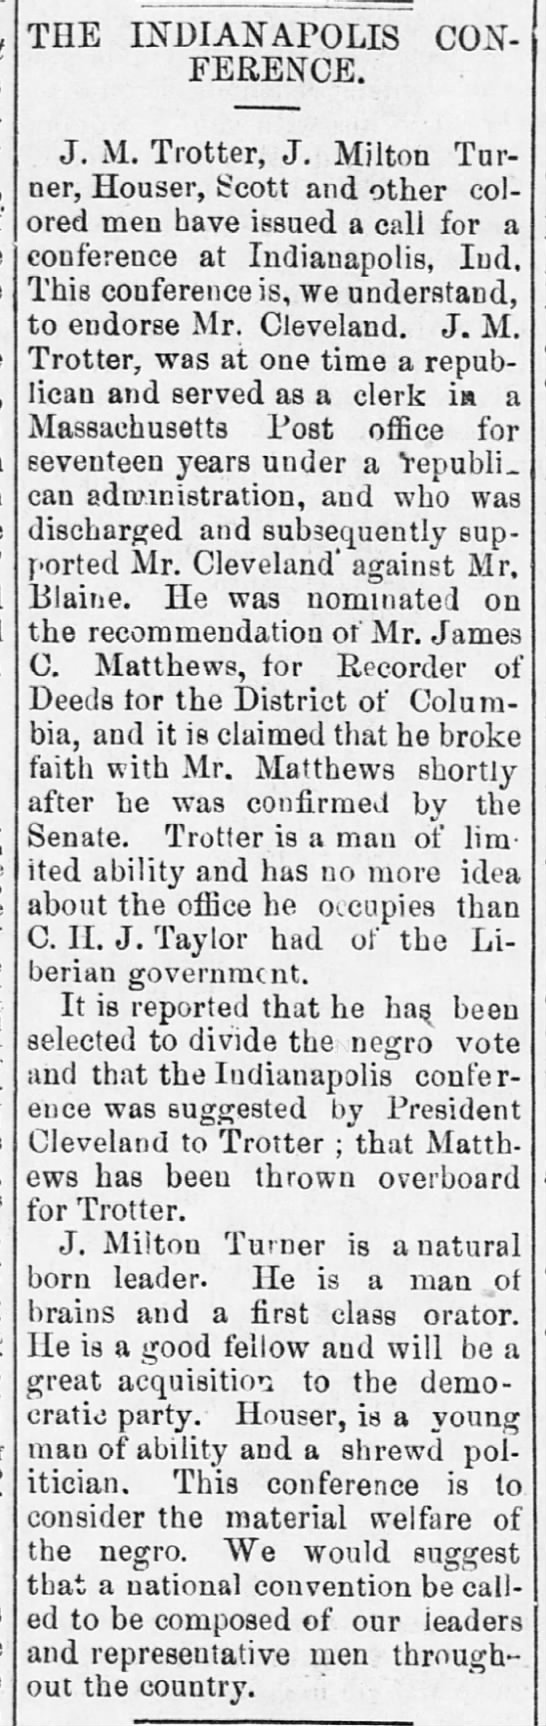 1888-07-07-WashingtonBee-p2-IndianapolisConference -